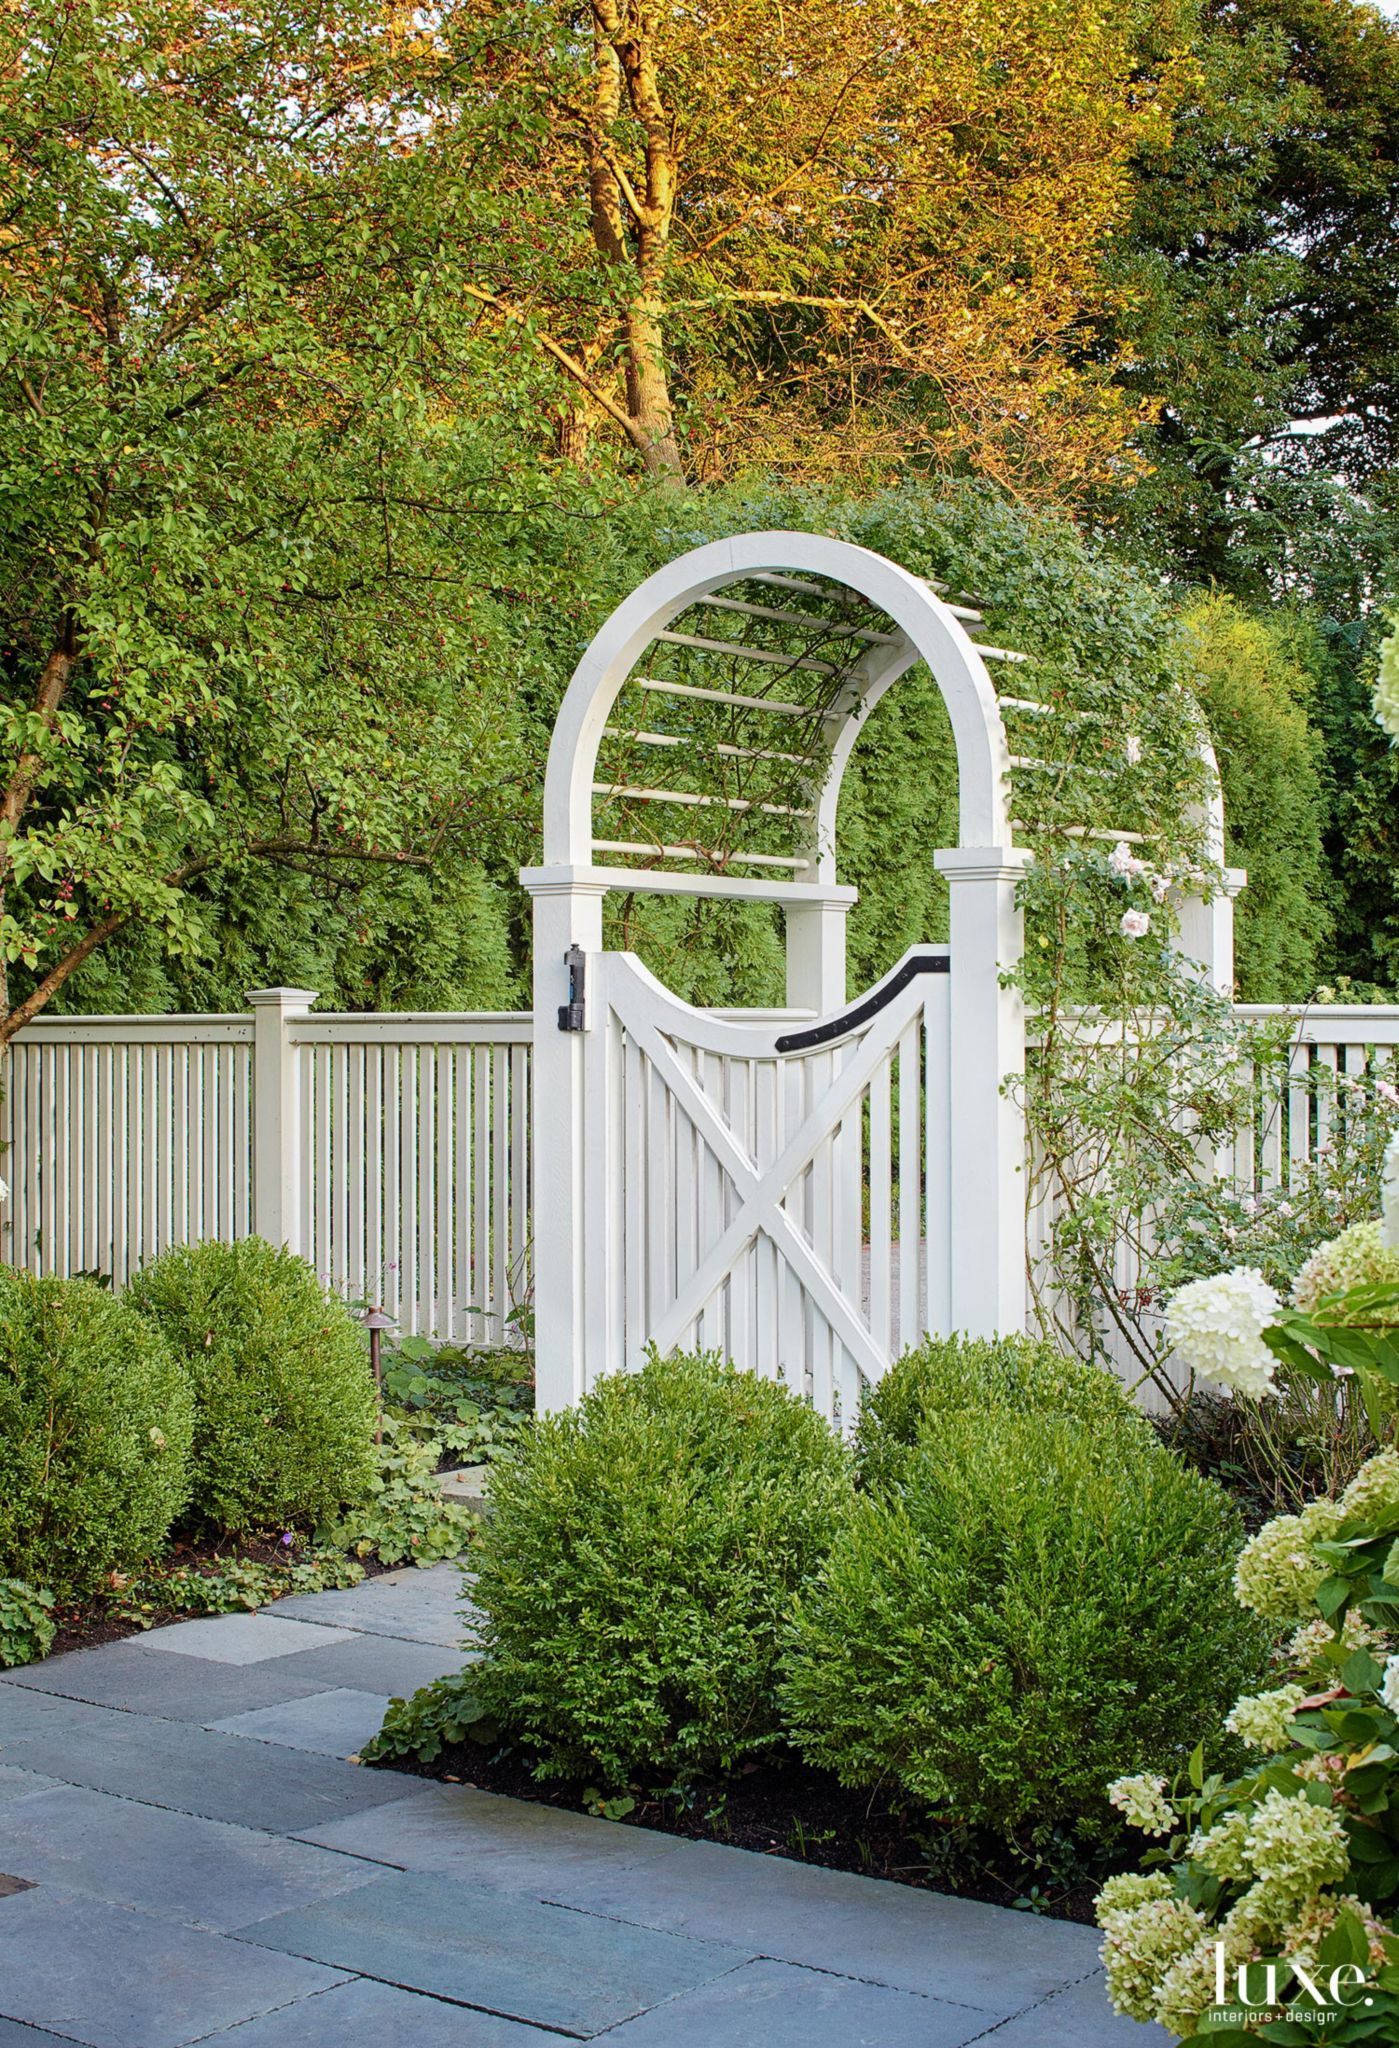 20 Homes with Unforgettable Gates   LuxeDaily - Design Insight from the Editors of Luxe Interiors + Design